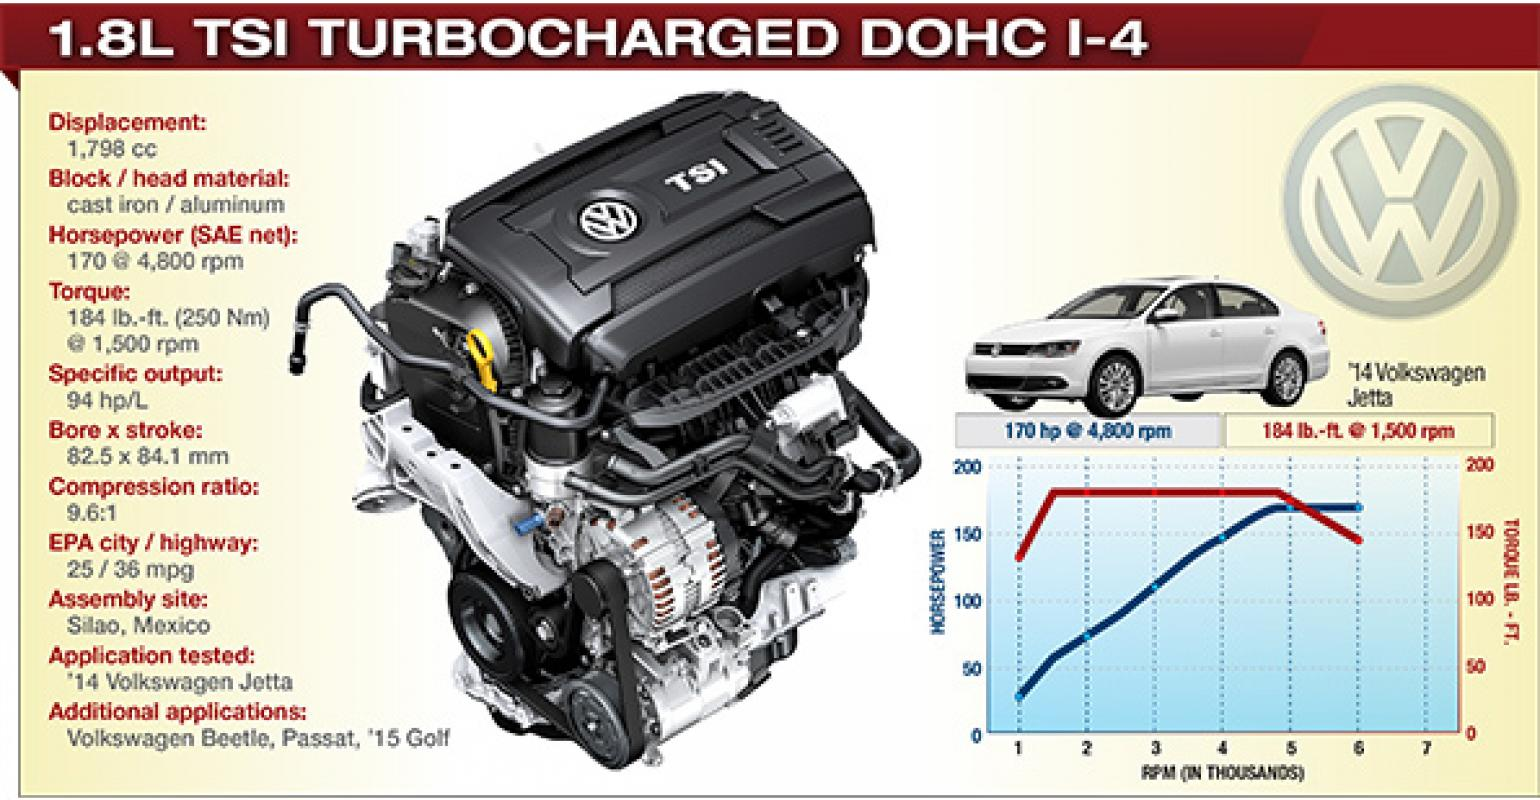 2014 Winner Vw 1 8l Tsi Turbocharged Dohc I 4 Wardsauto